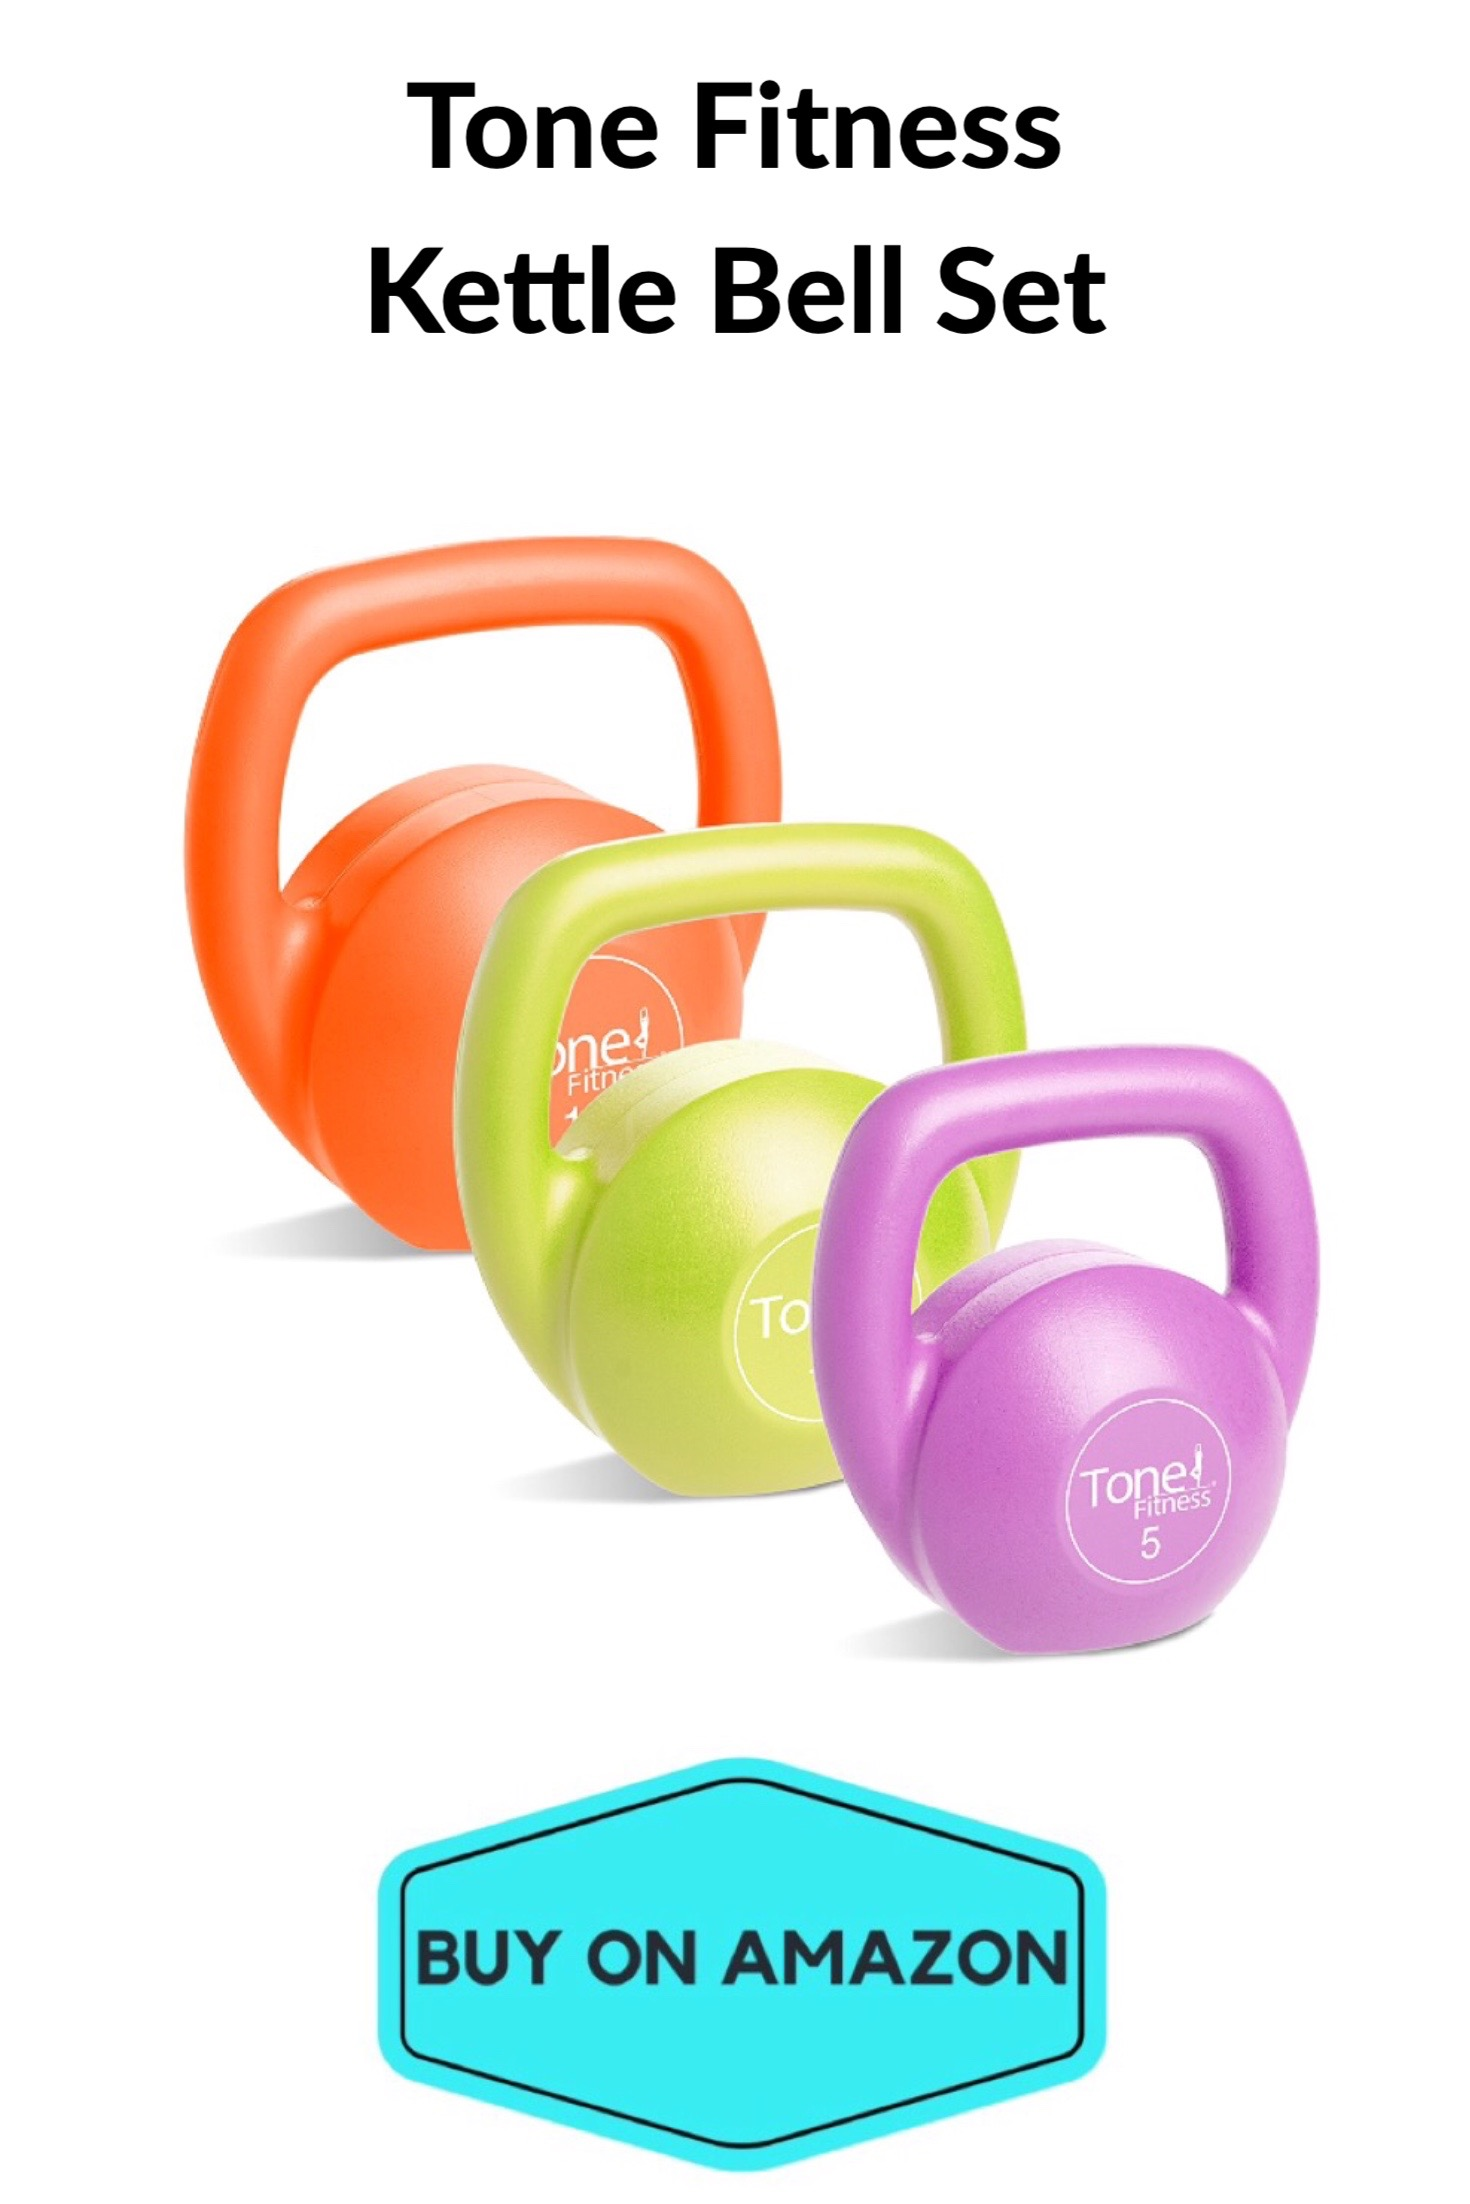 Tone Fitness Kettle Bell Set